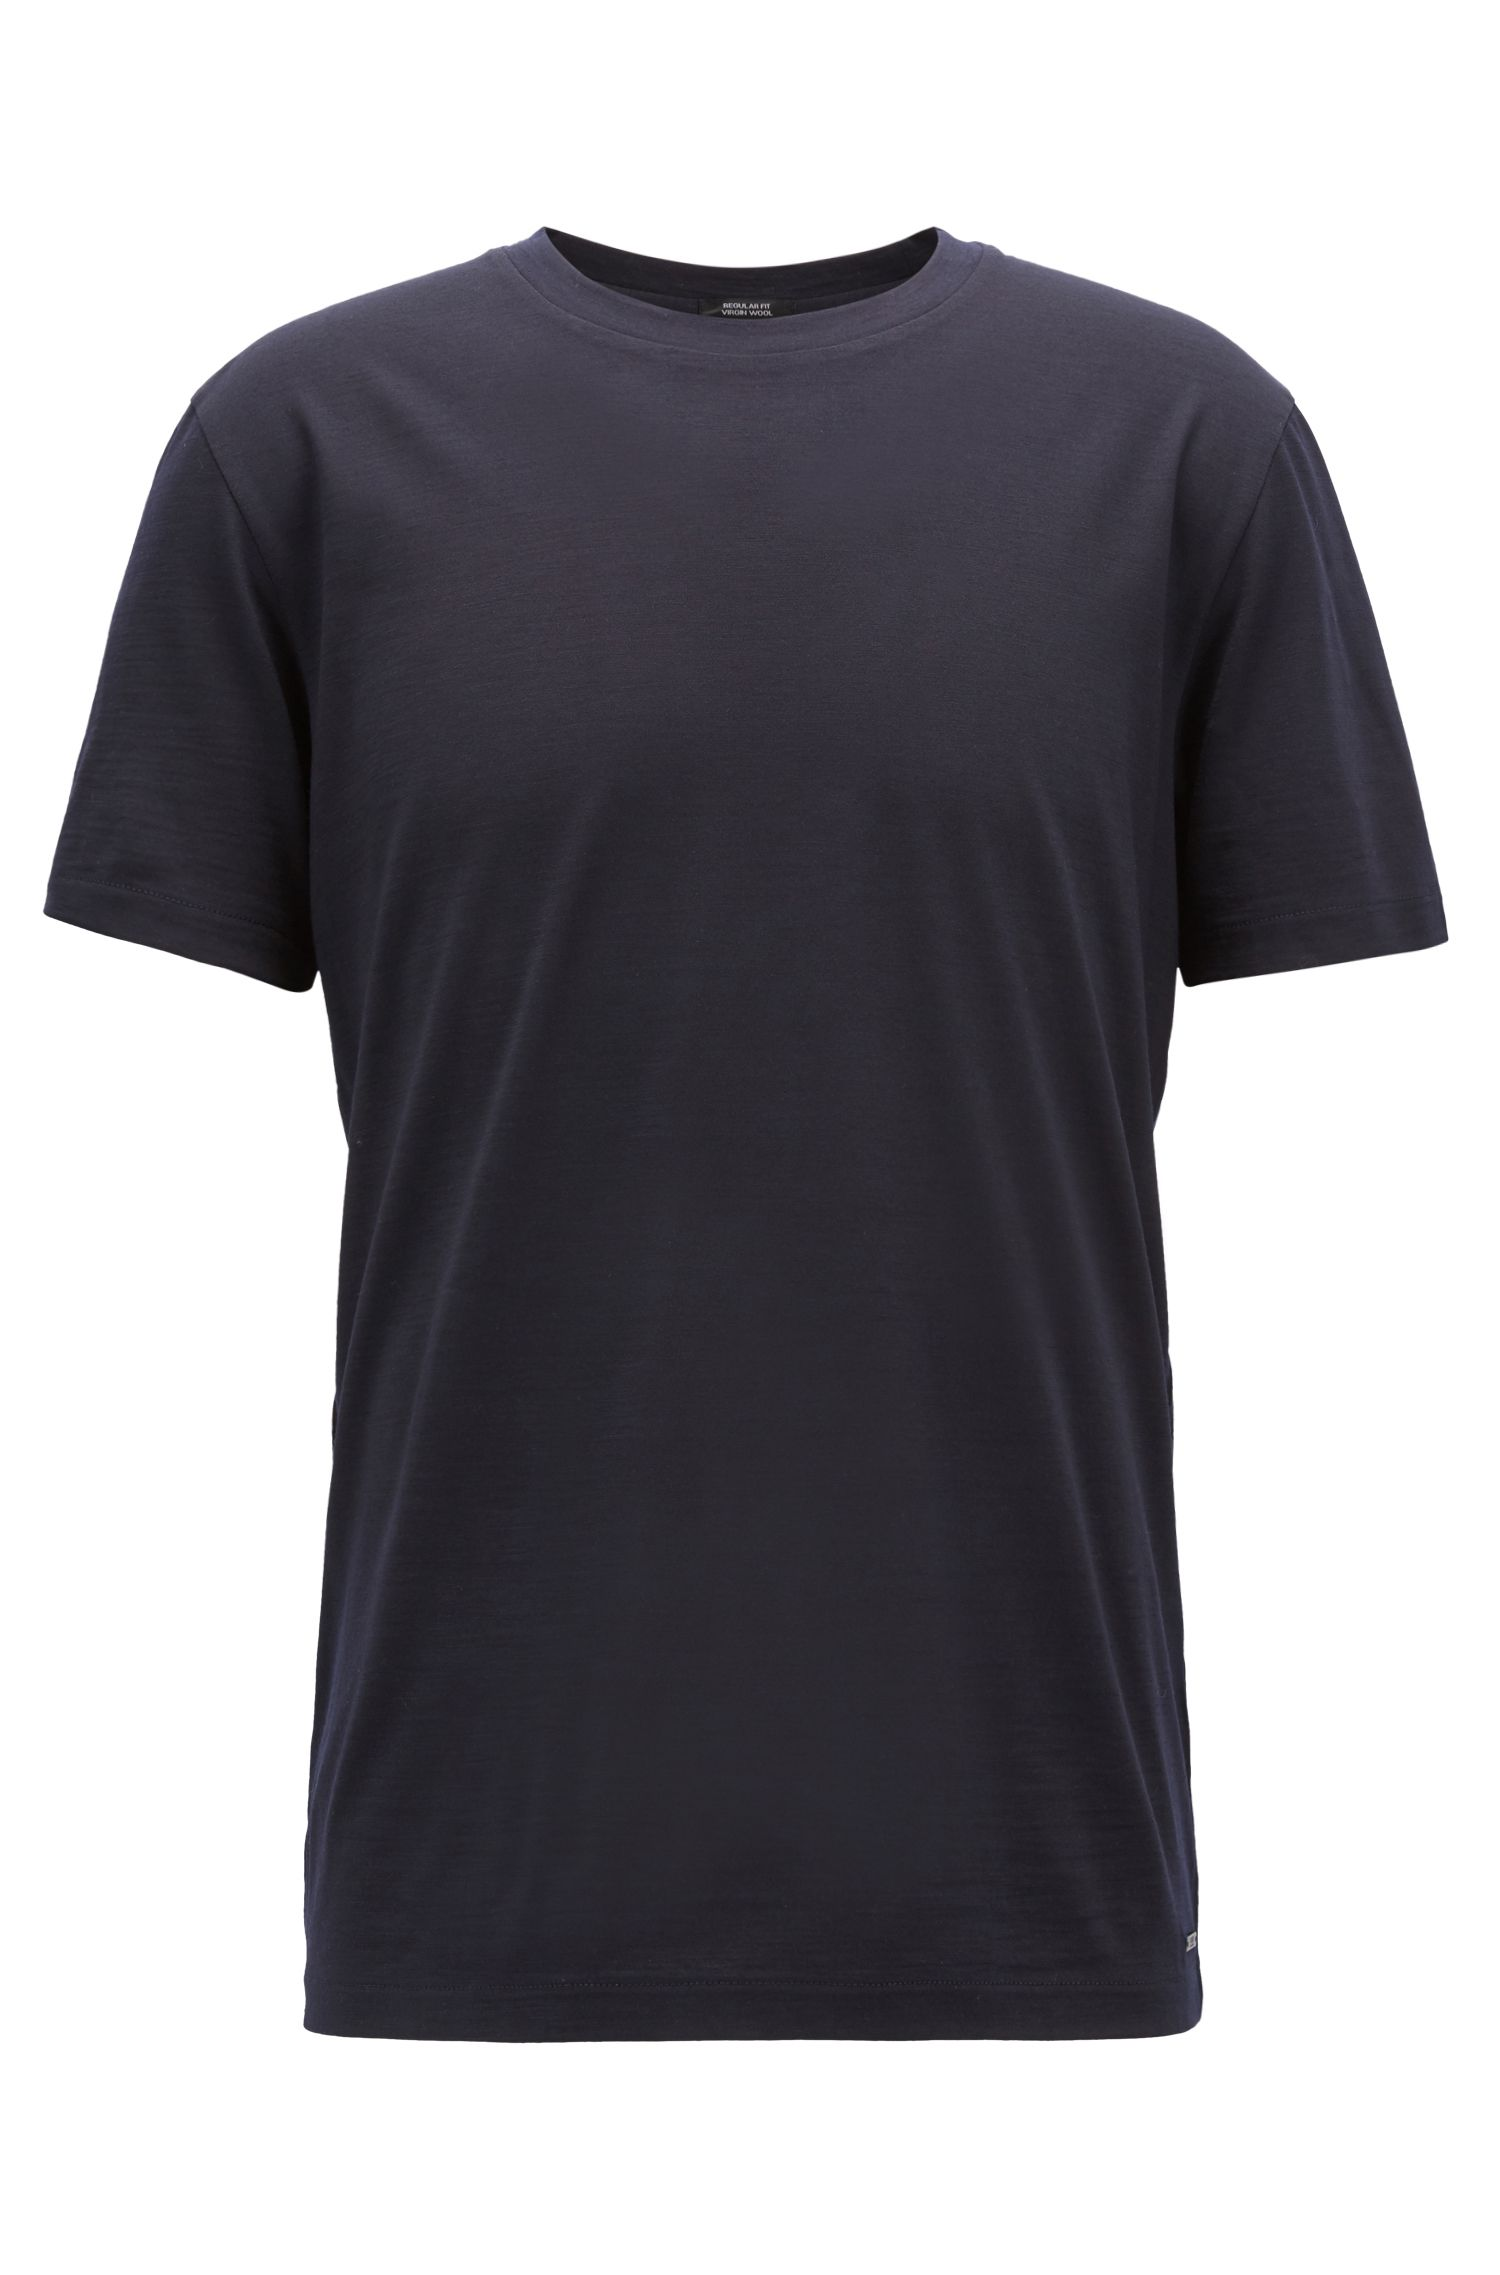 Travel Line T-shirt in Italian virgin wool, Open Blue